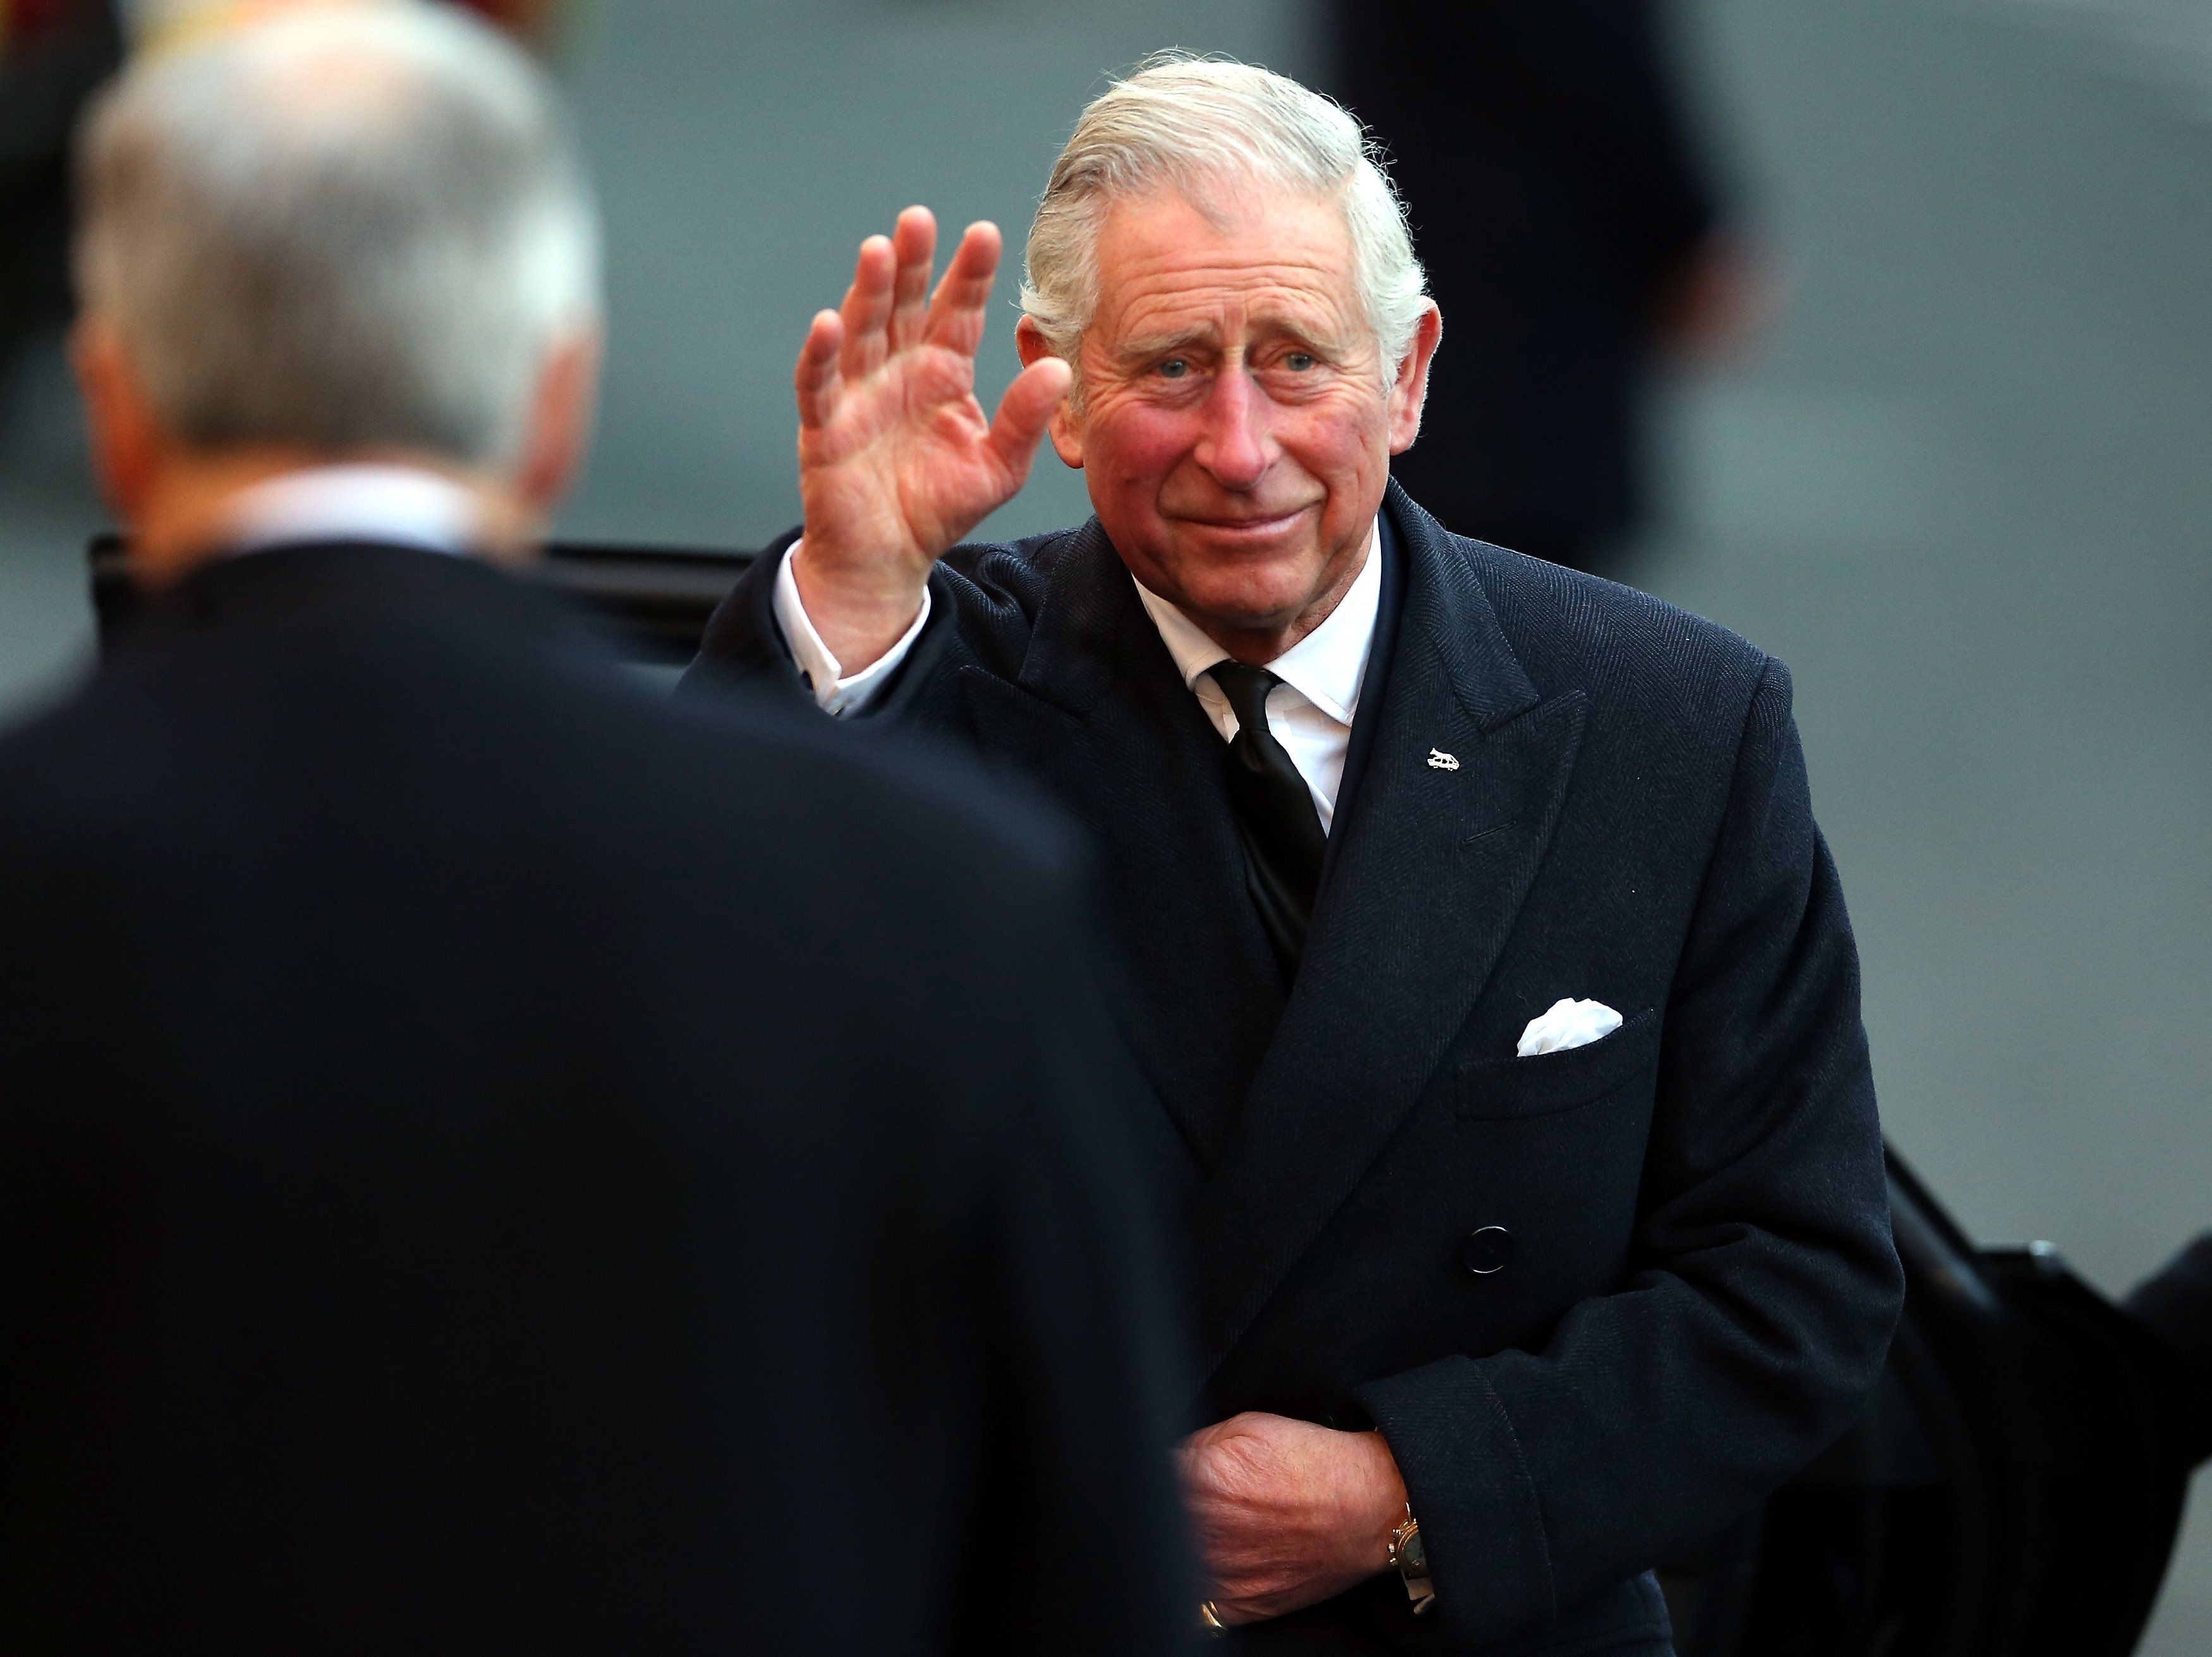 CHESTER, ENGLAND - NOVEMBER 28:  Prince Charles, Prince of Wales arrives for the memorial service of The Duke of Westminster at Chester Cathedral on November 28, 2016 in Chester, England.. The Duke is survived by his wife, the Duchess of Westminster, Natalia Grosvenor, daughters Lady Tamara van Cutsem, Lady Edwina Grosvenor and Lady Viola Grosvenor and his 25-year-old son and heir Hugh Grosvenor.   (Photo by Nigel Roddis/Getty Images)